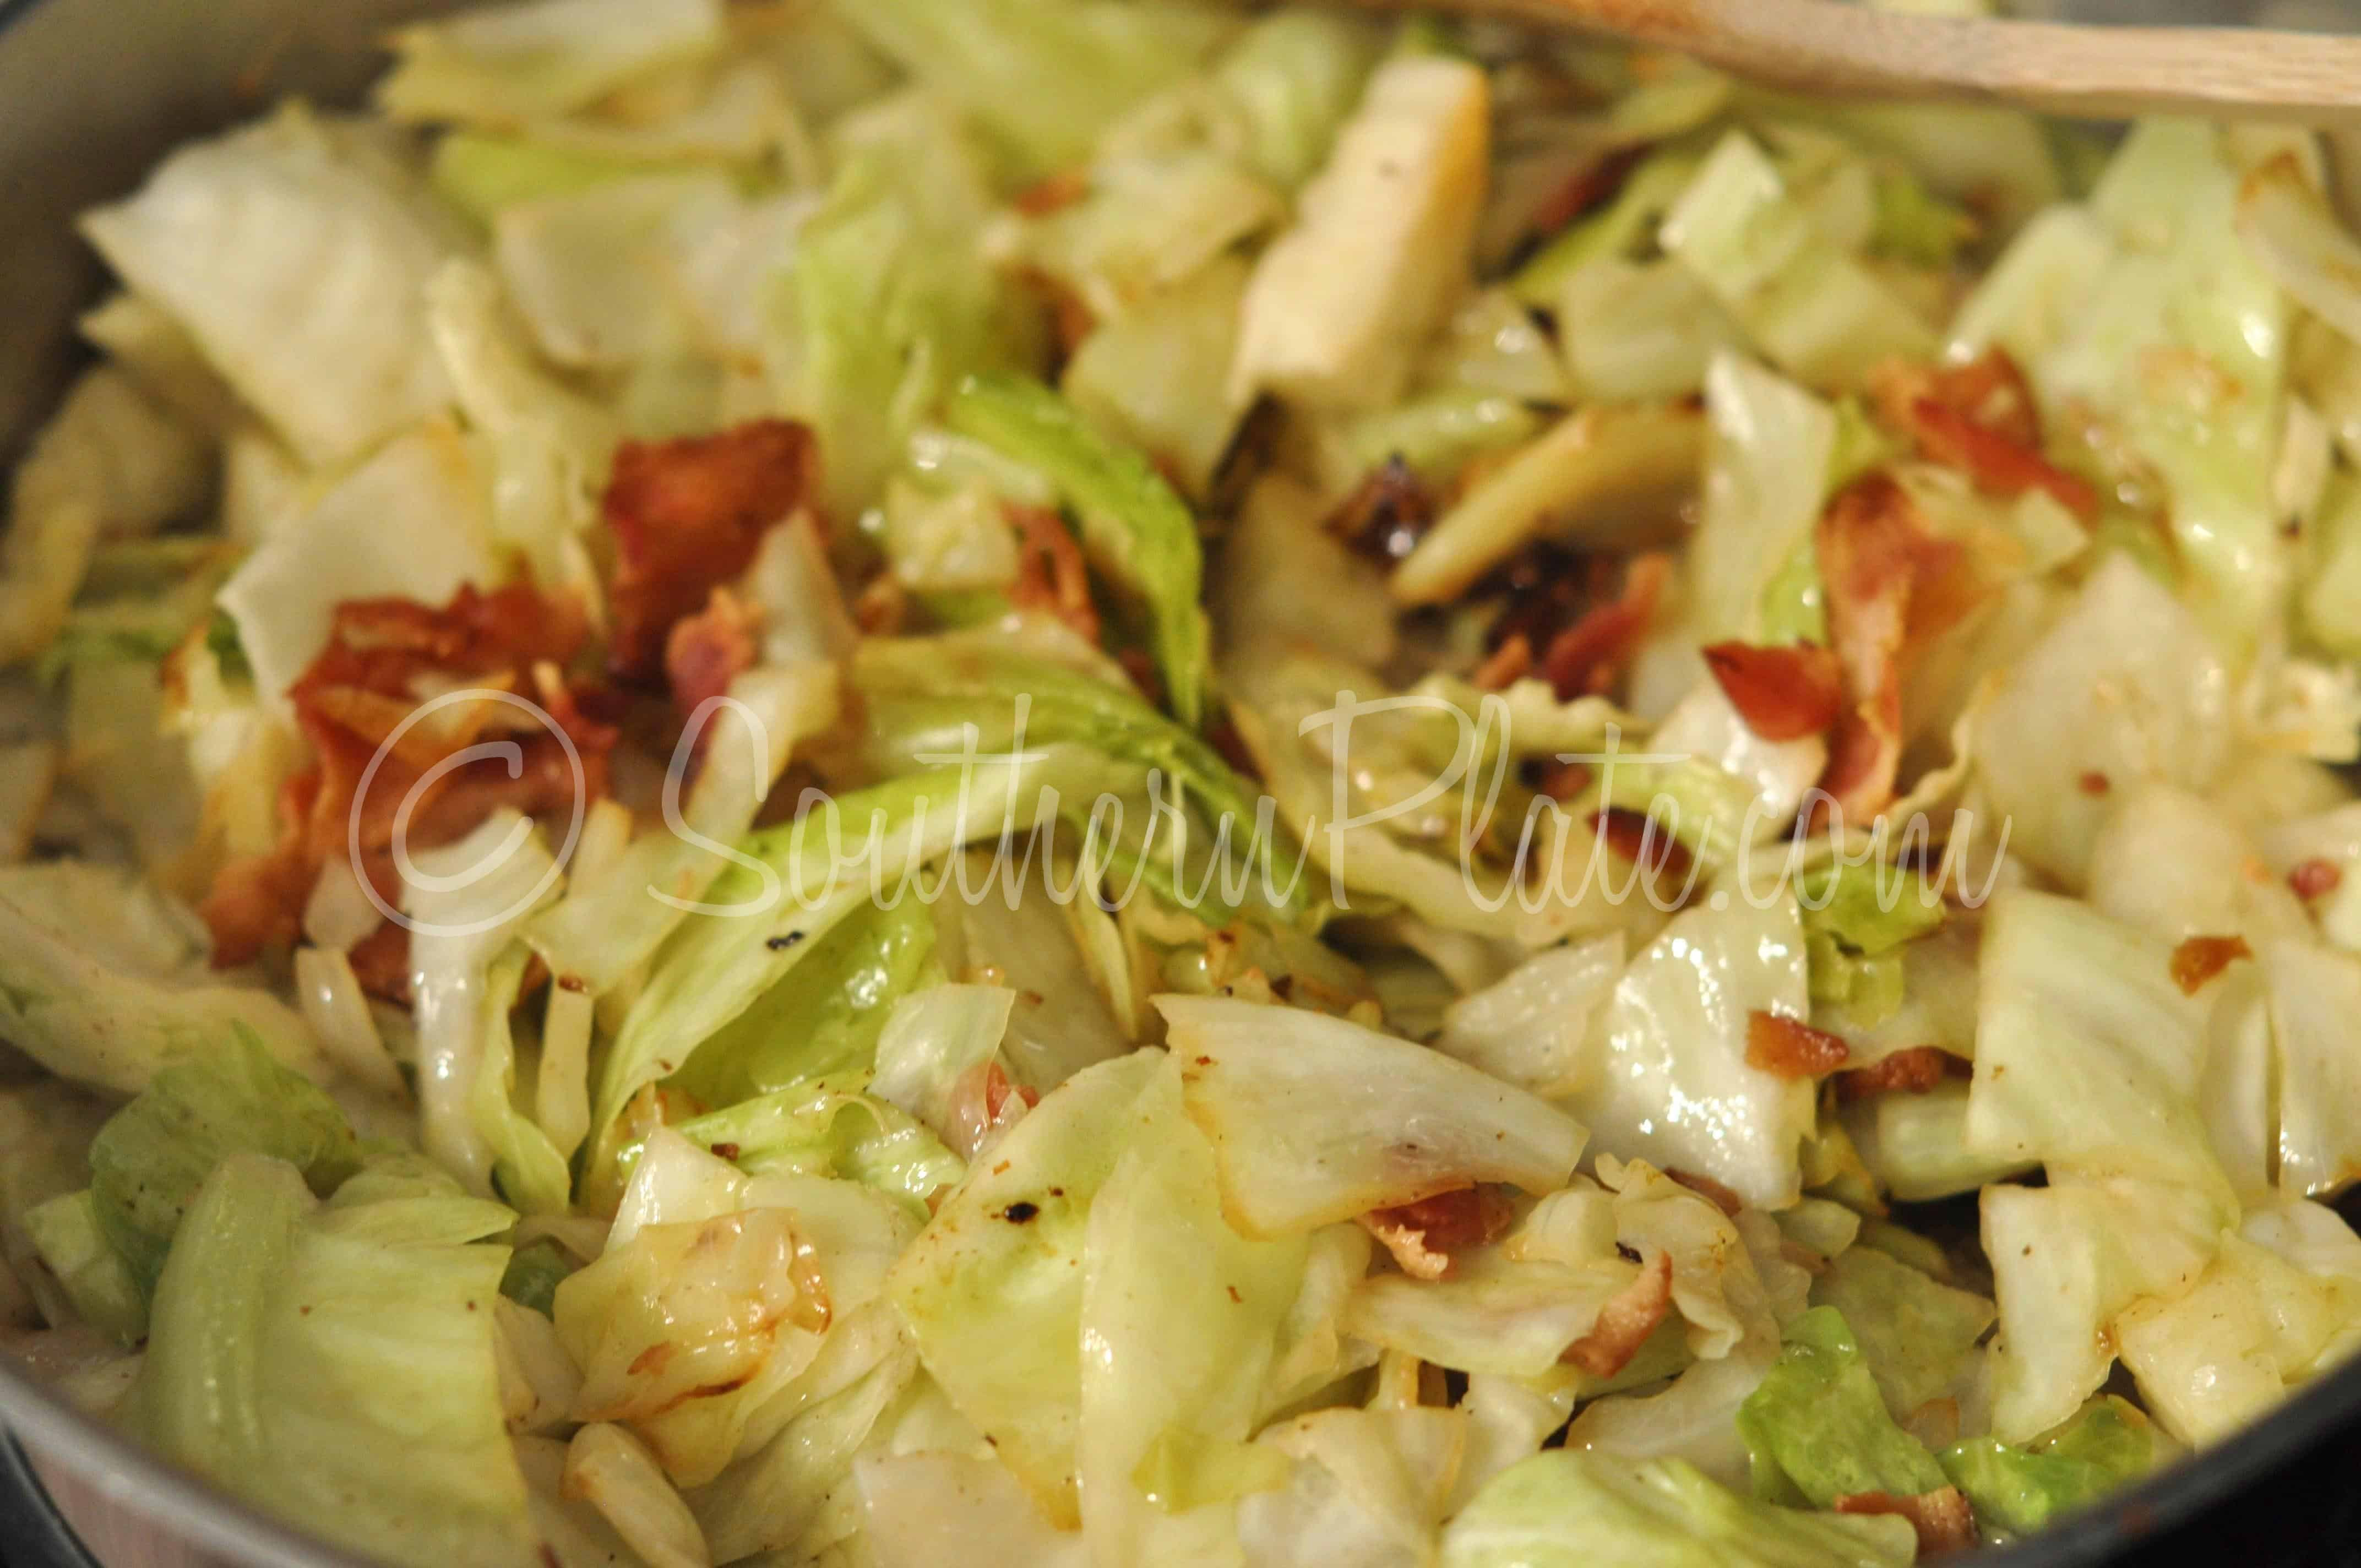 Southern Bacon Fried Cabbage  Fried Cabbage and Southern Misconceptions